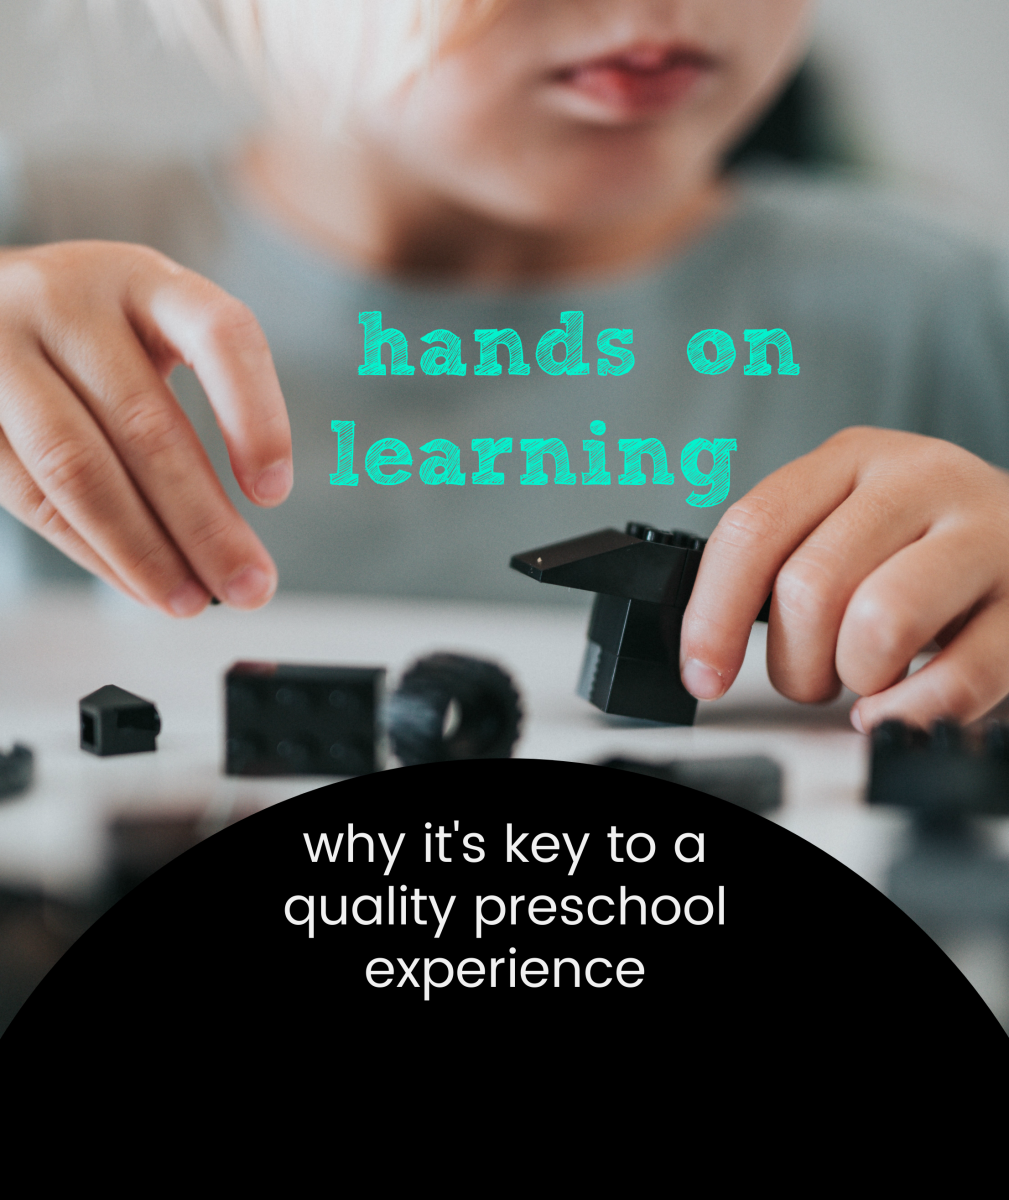 Hands-on learning is diminishing at preschools so it's important that parents know what it is and why it's so valuable.